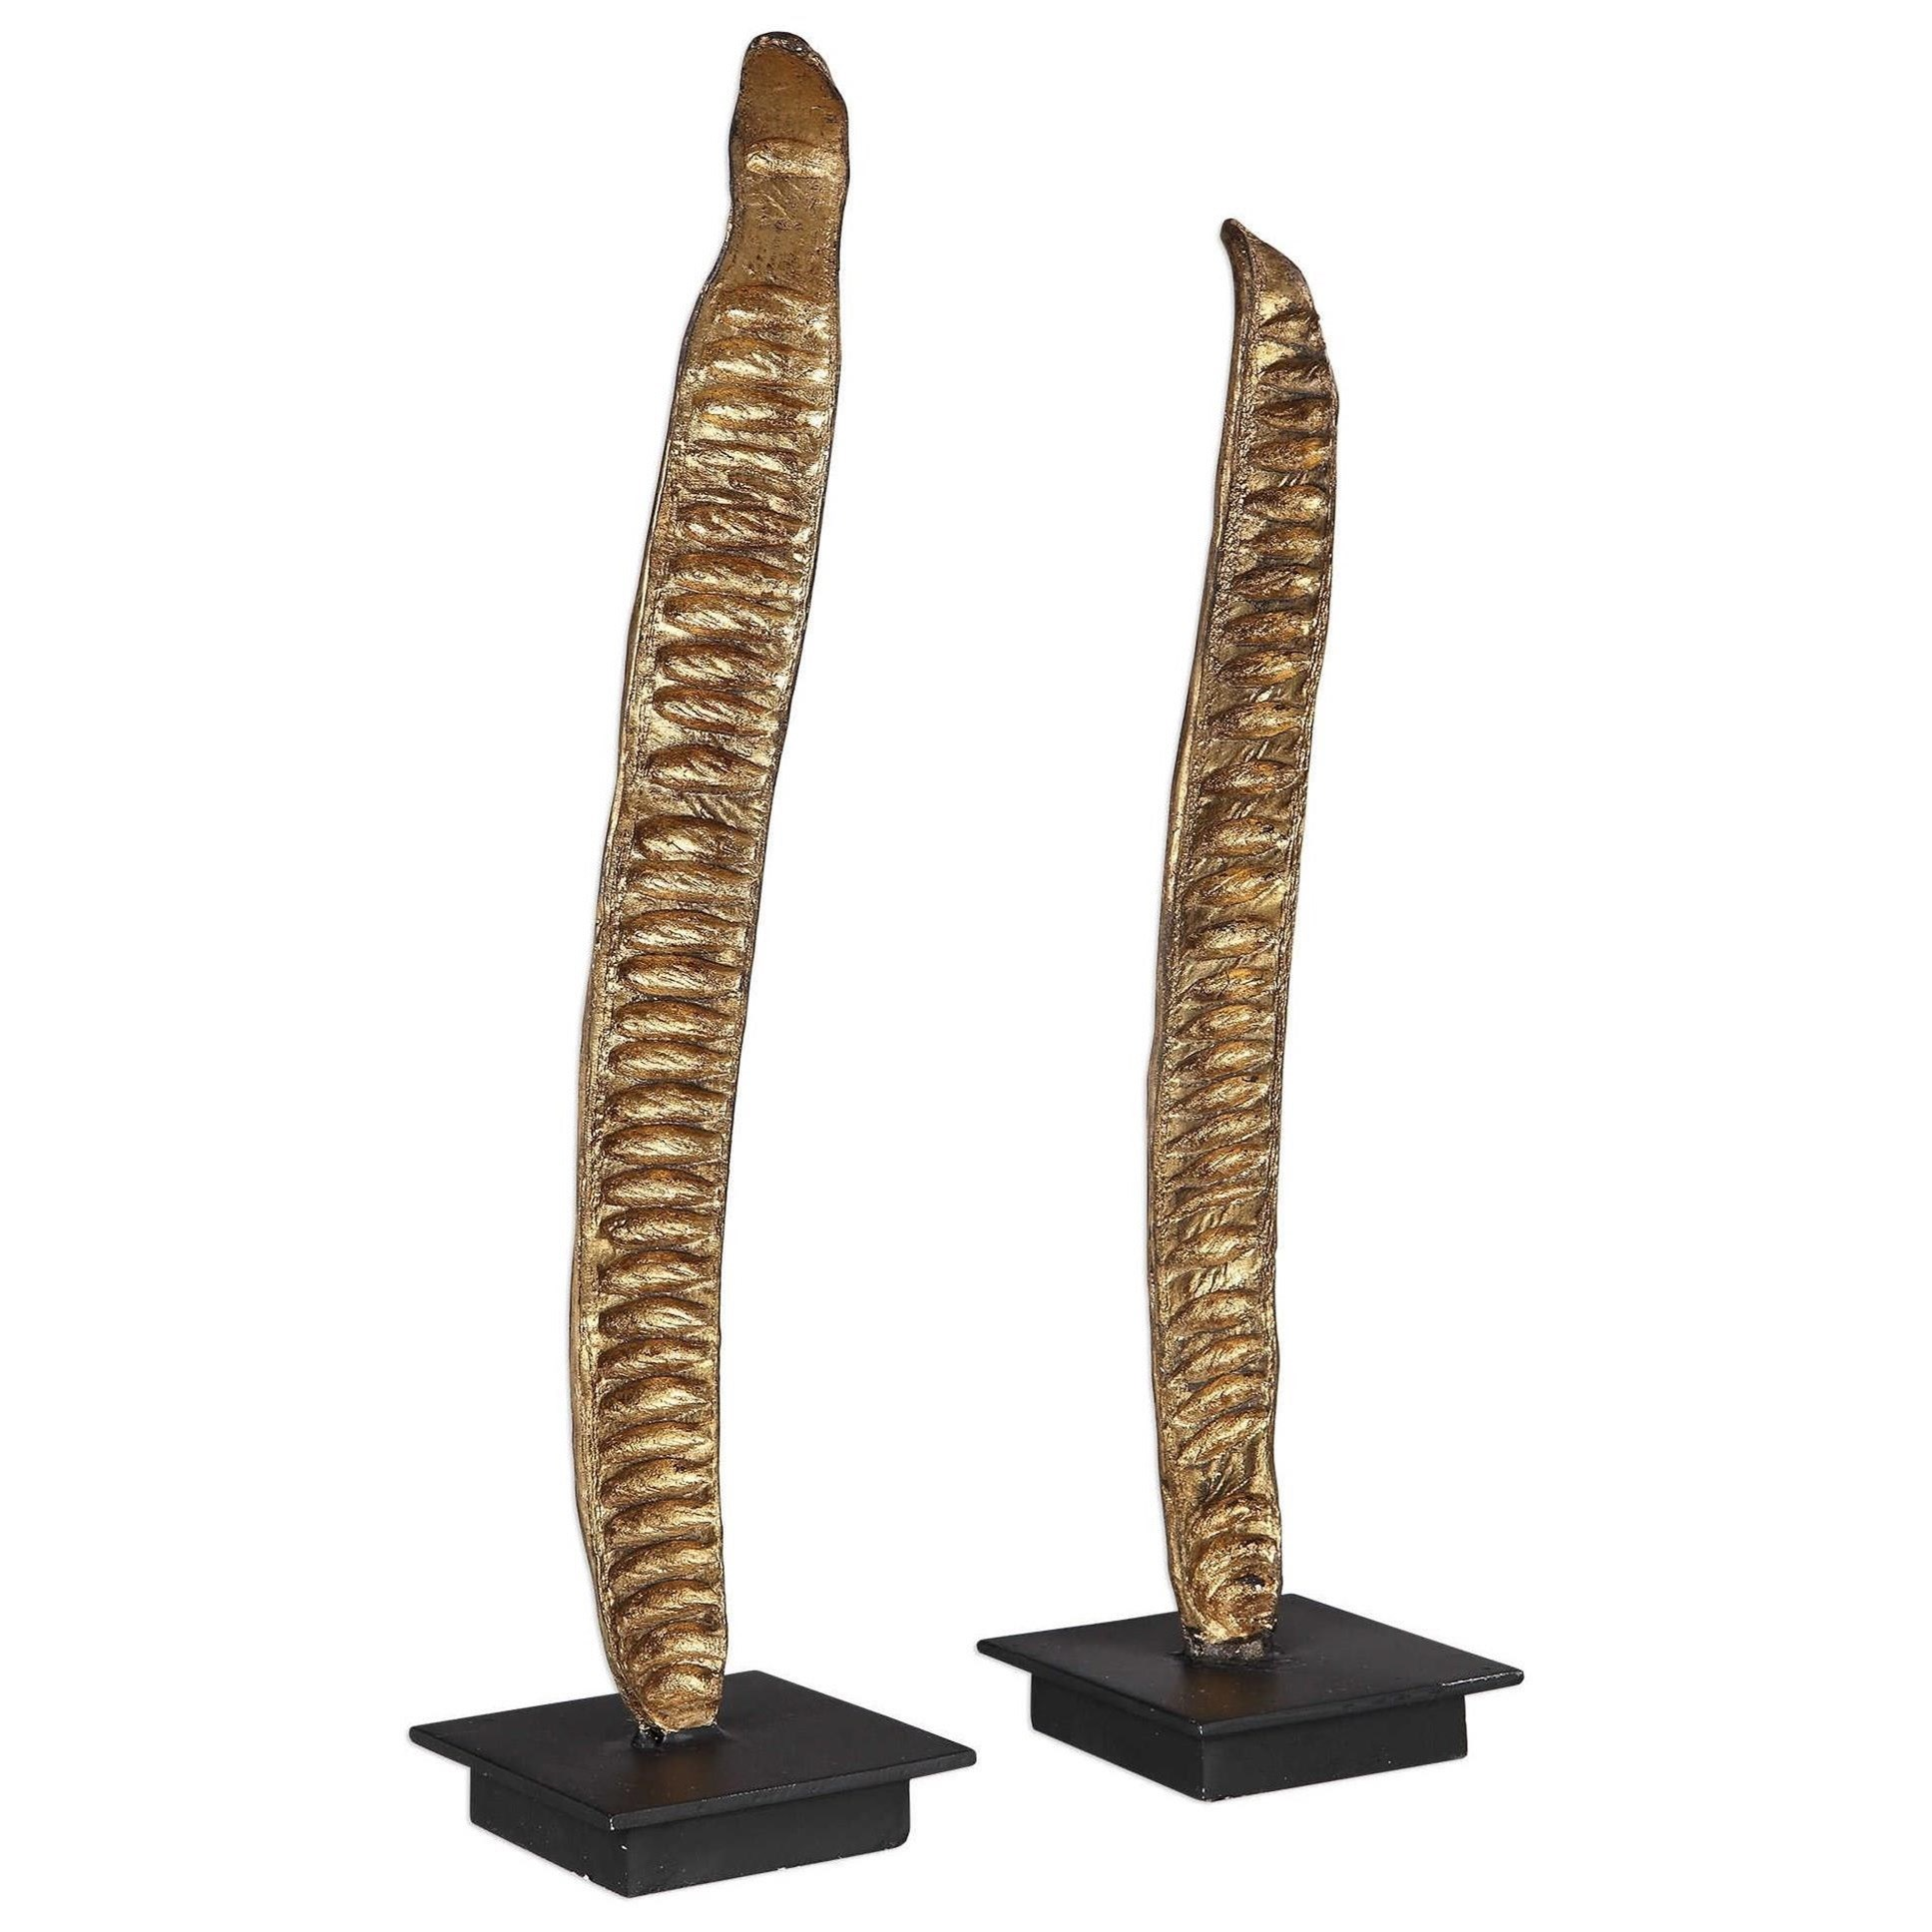 Poinciana Pod Sculptures, S/2